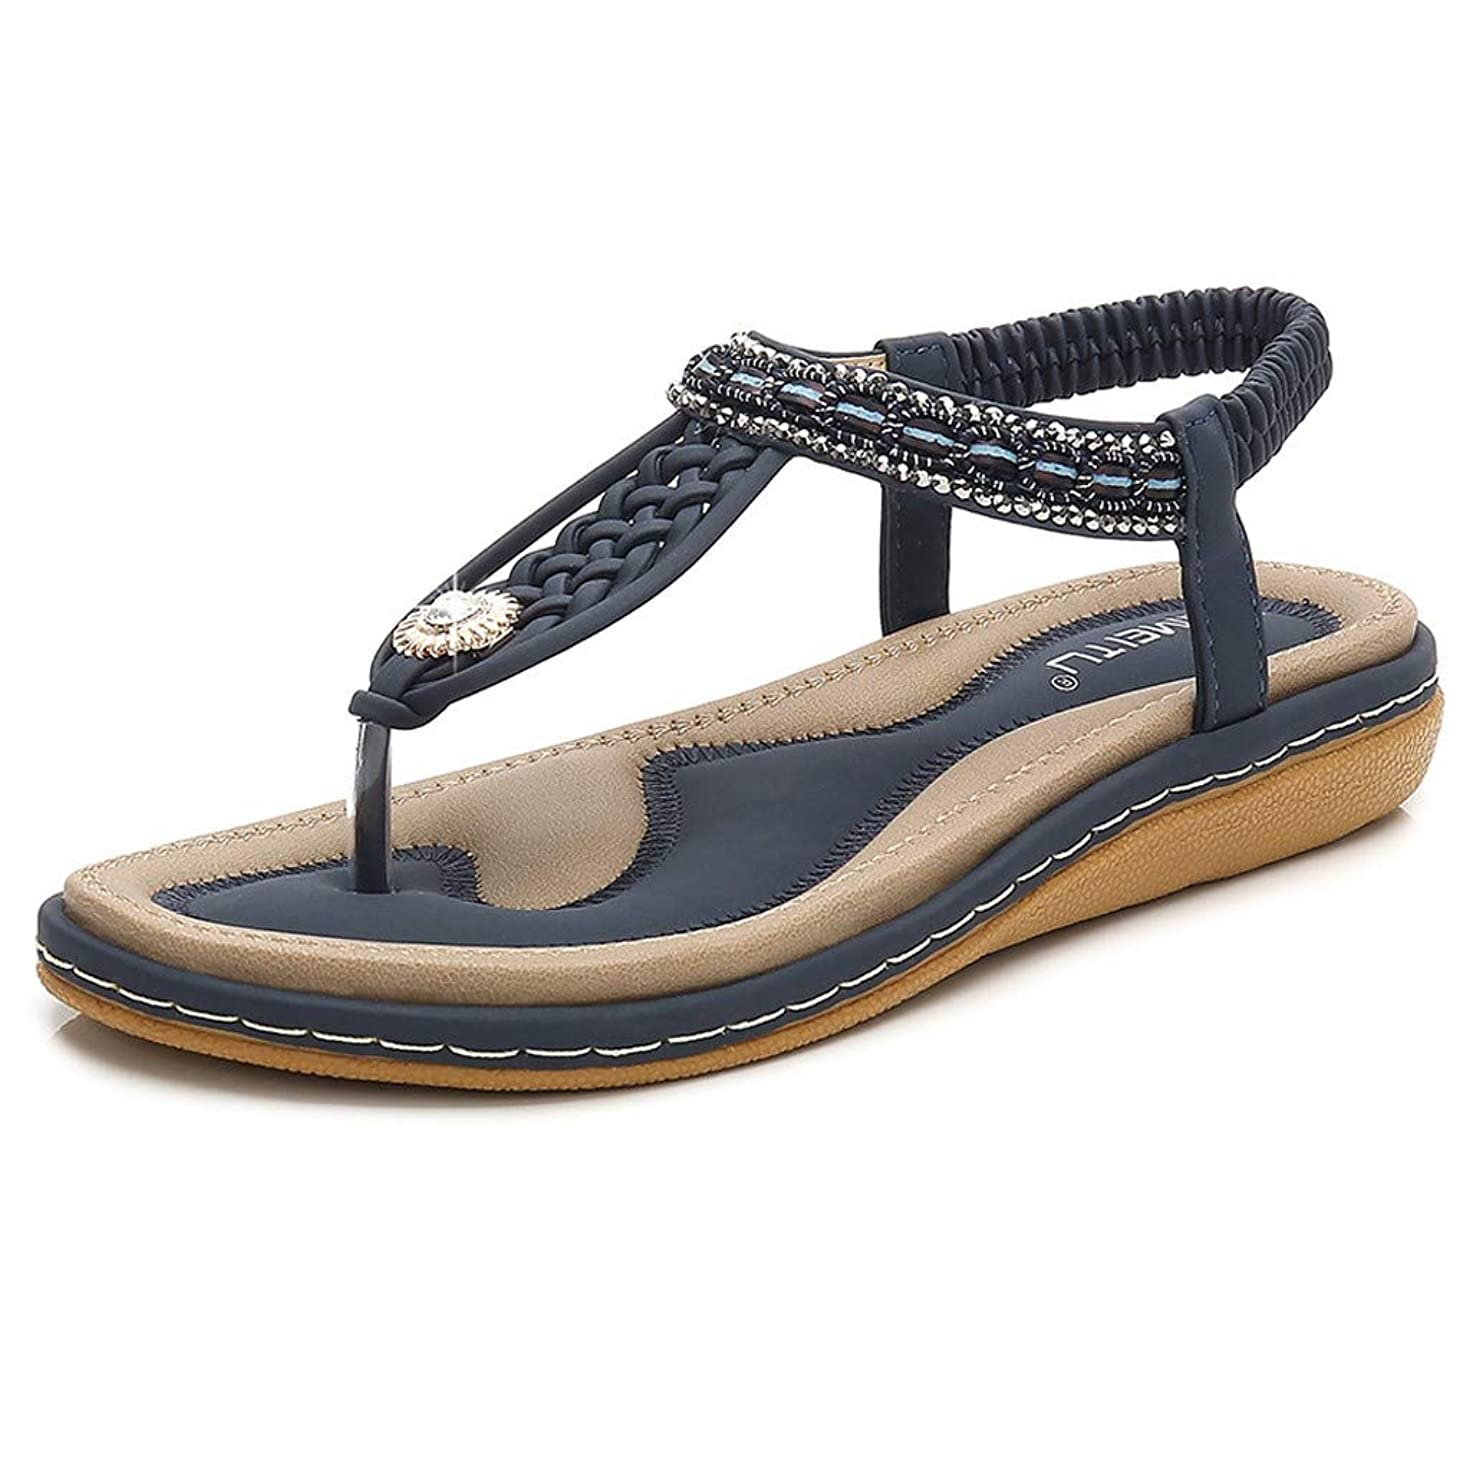 Aunimeifly Women's Soft Comfortable Sandals Ladies T-Strap Crystal Clip Toe Woven Ankle Elastic Flat Roman Shoes